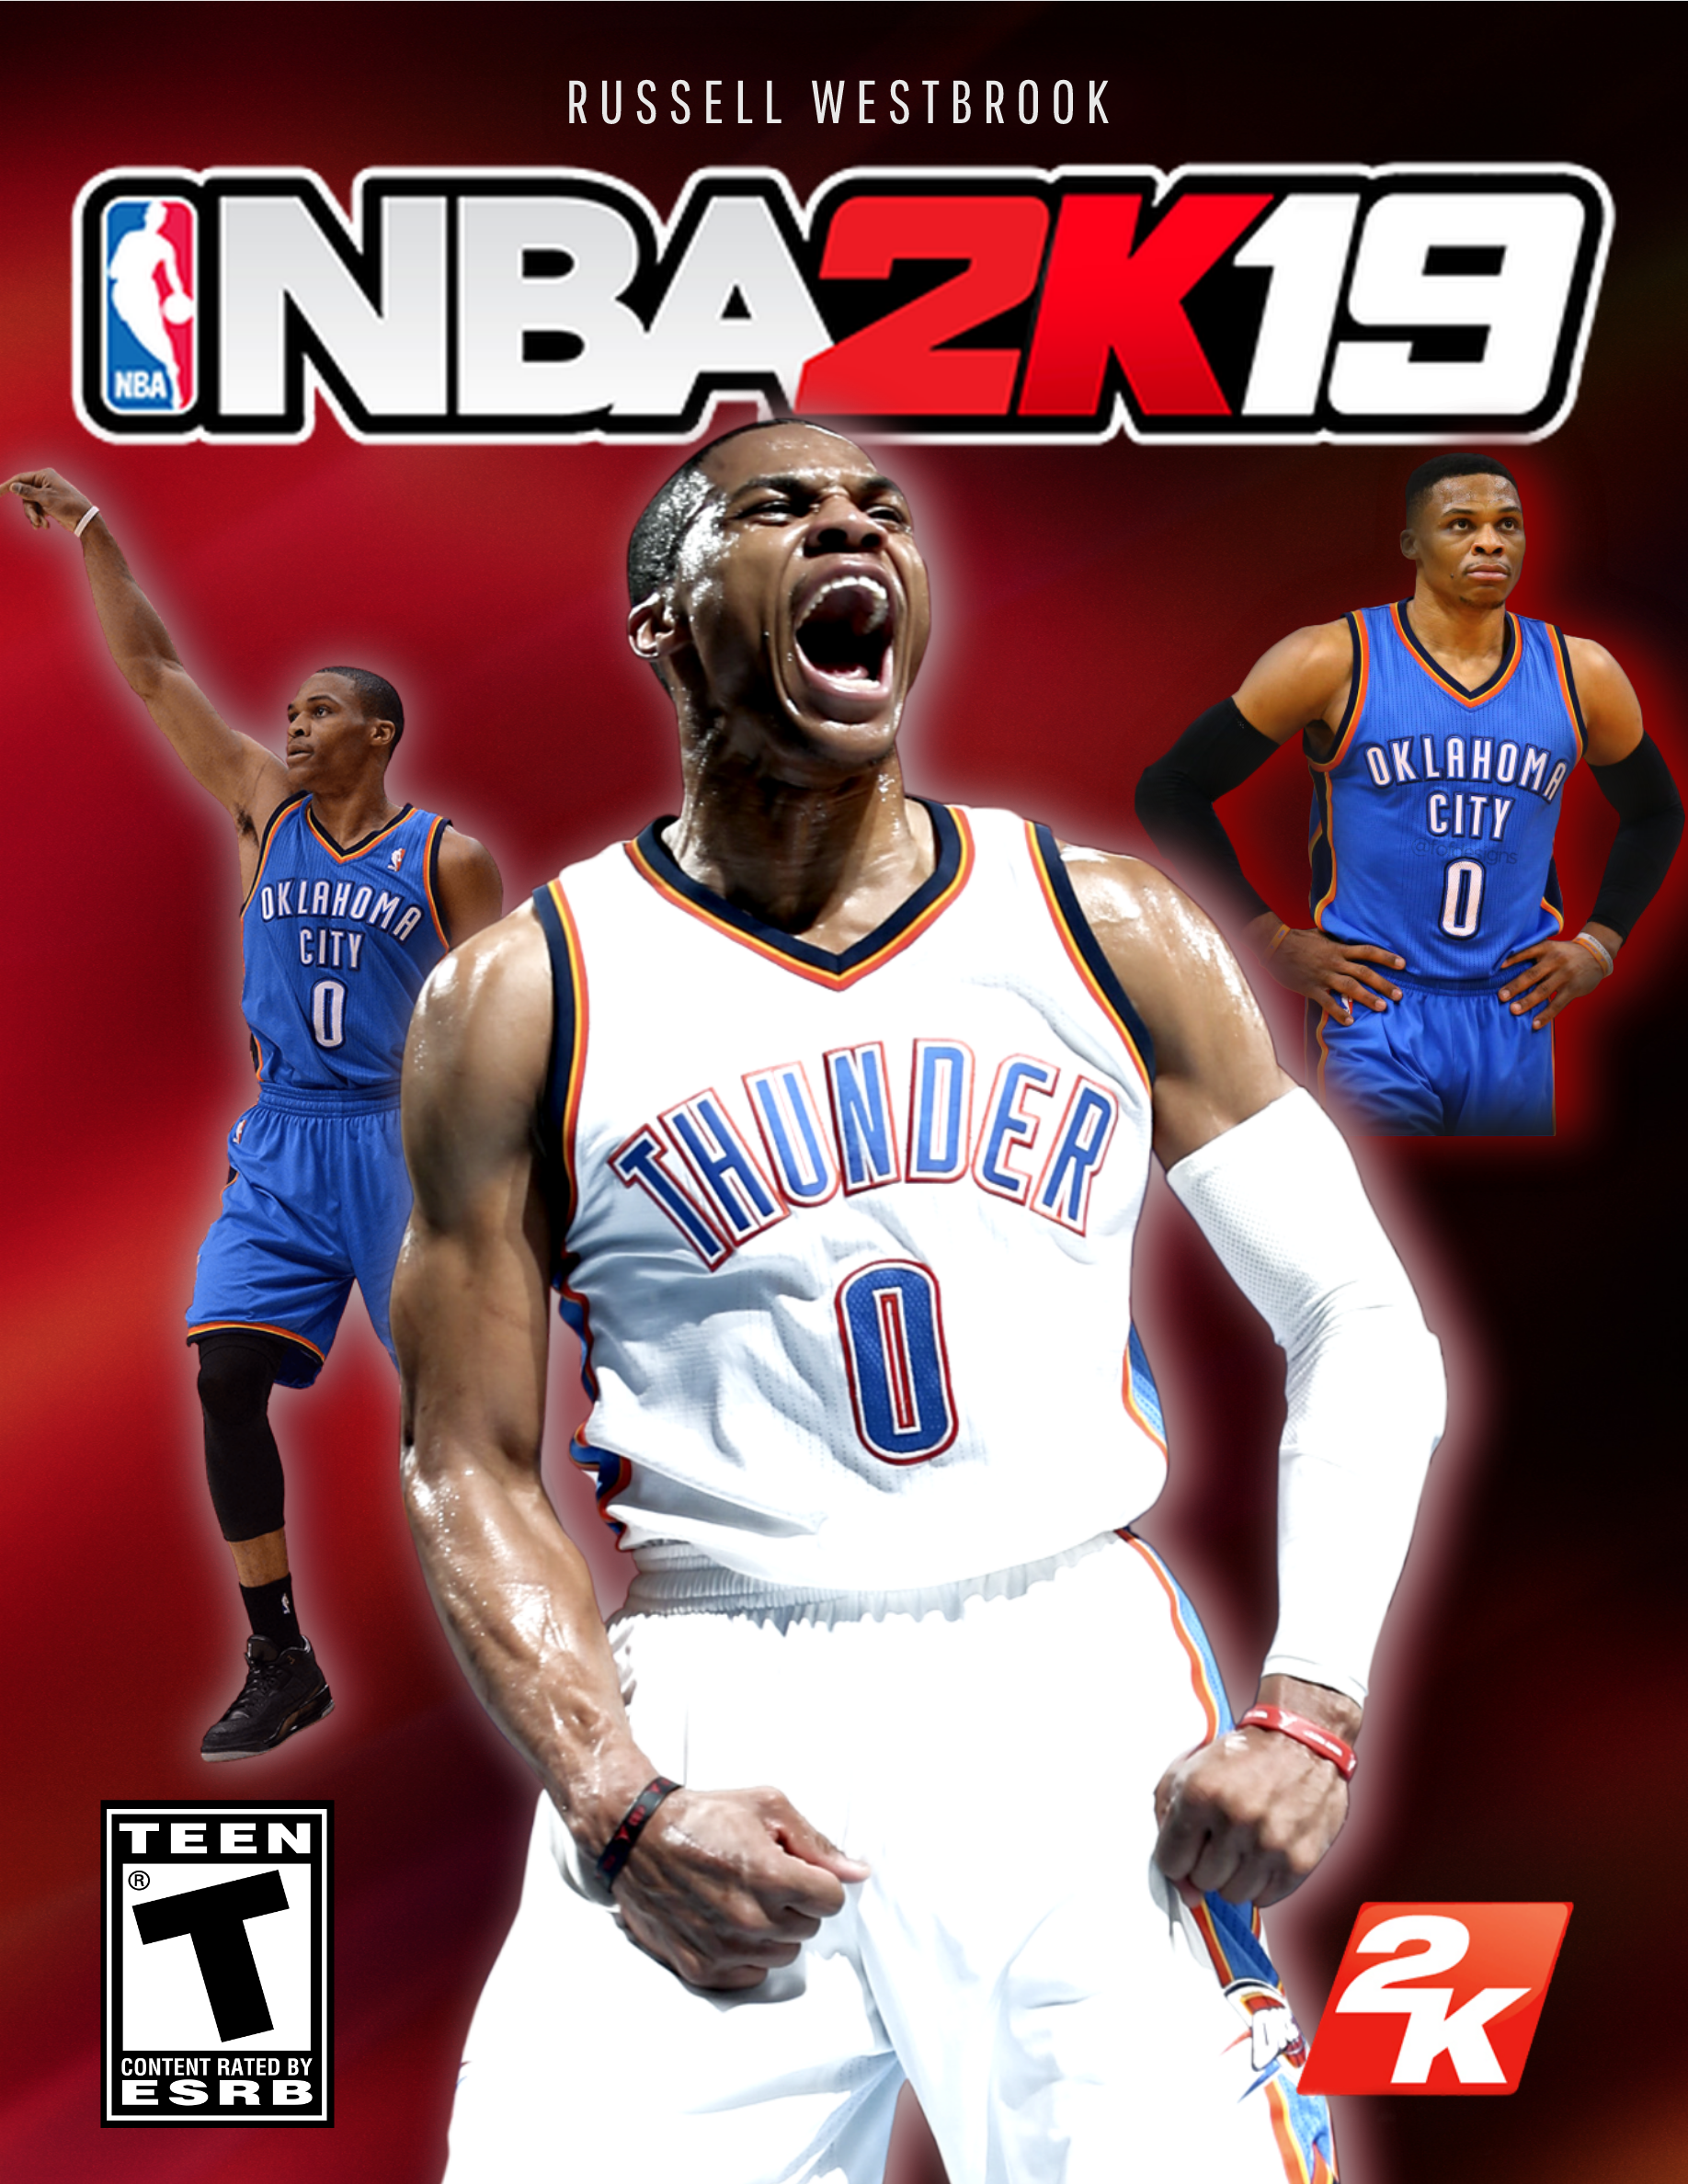 875c8fbc0 NBA 2K19 Cover Star Russell Westbrook